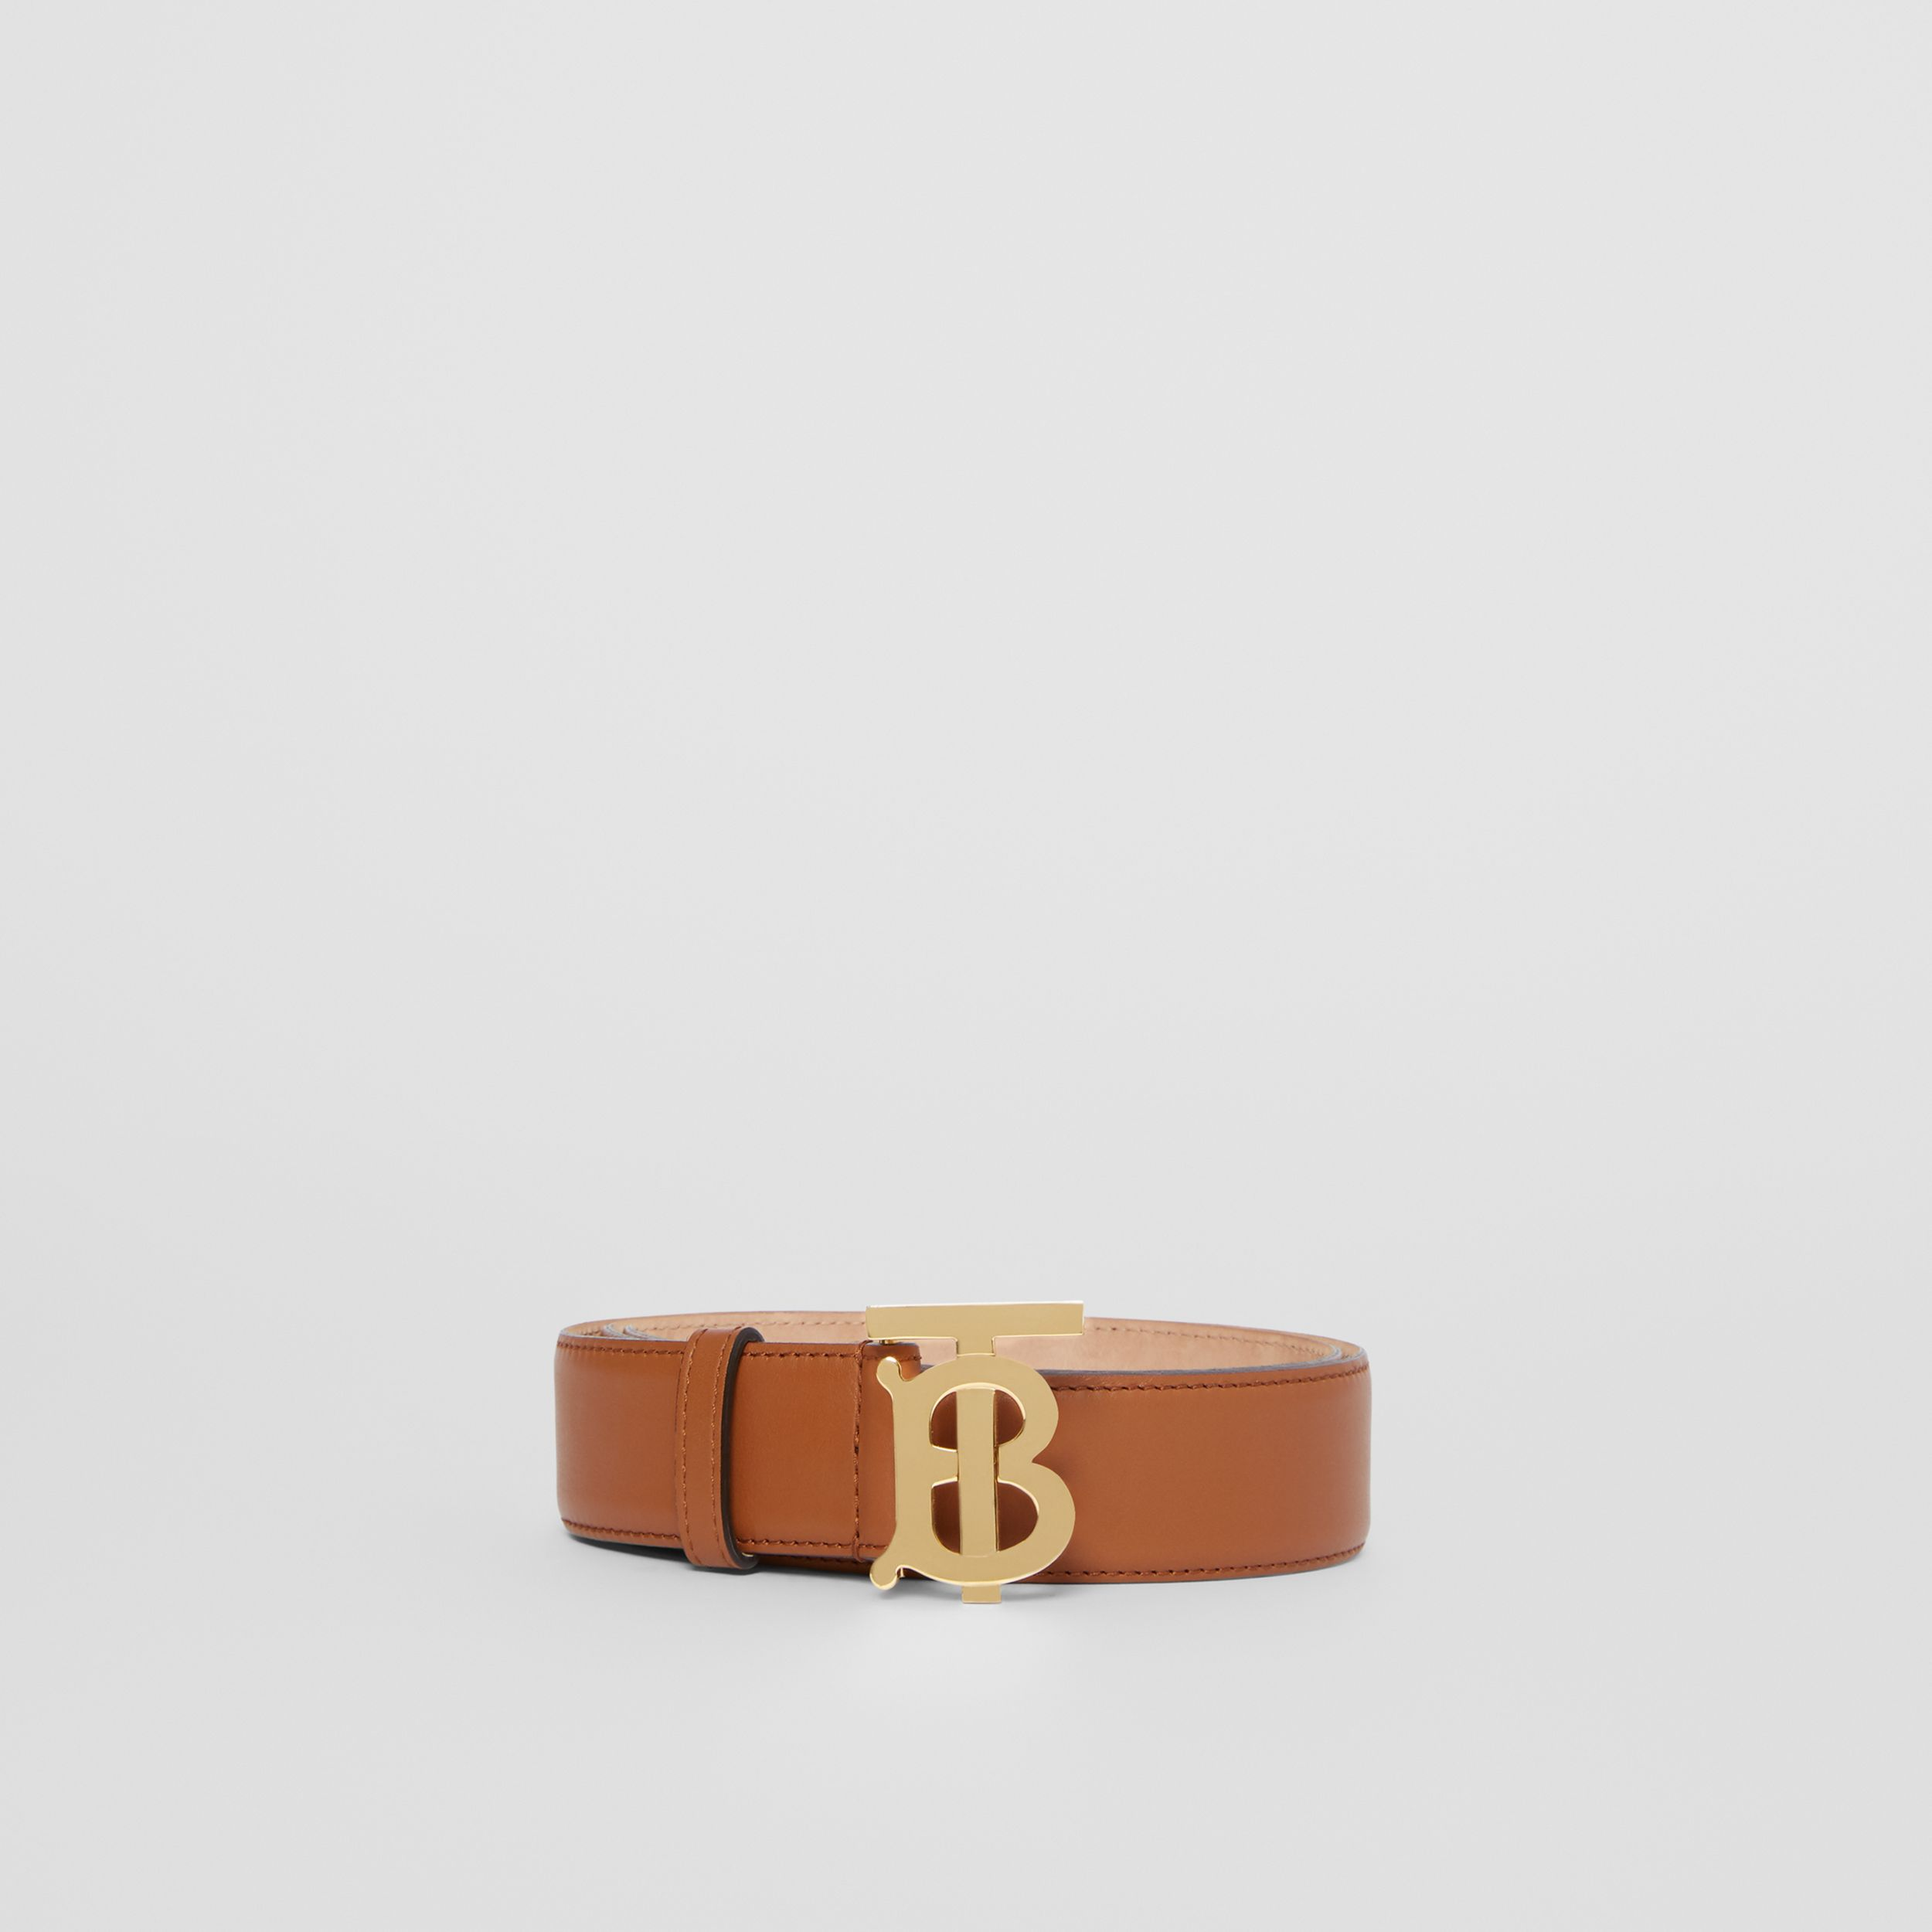 Monogram Motif Leather Belt in Tan - Women | Burberry - 4